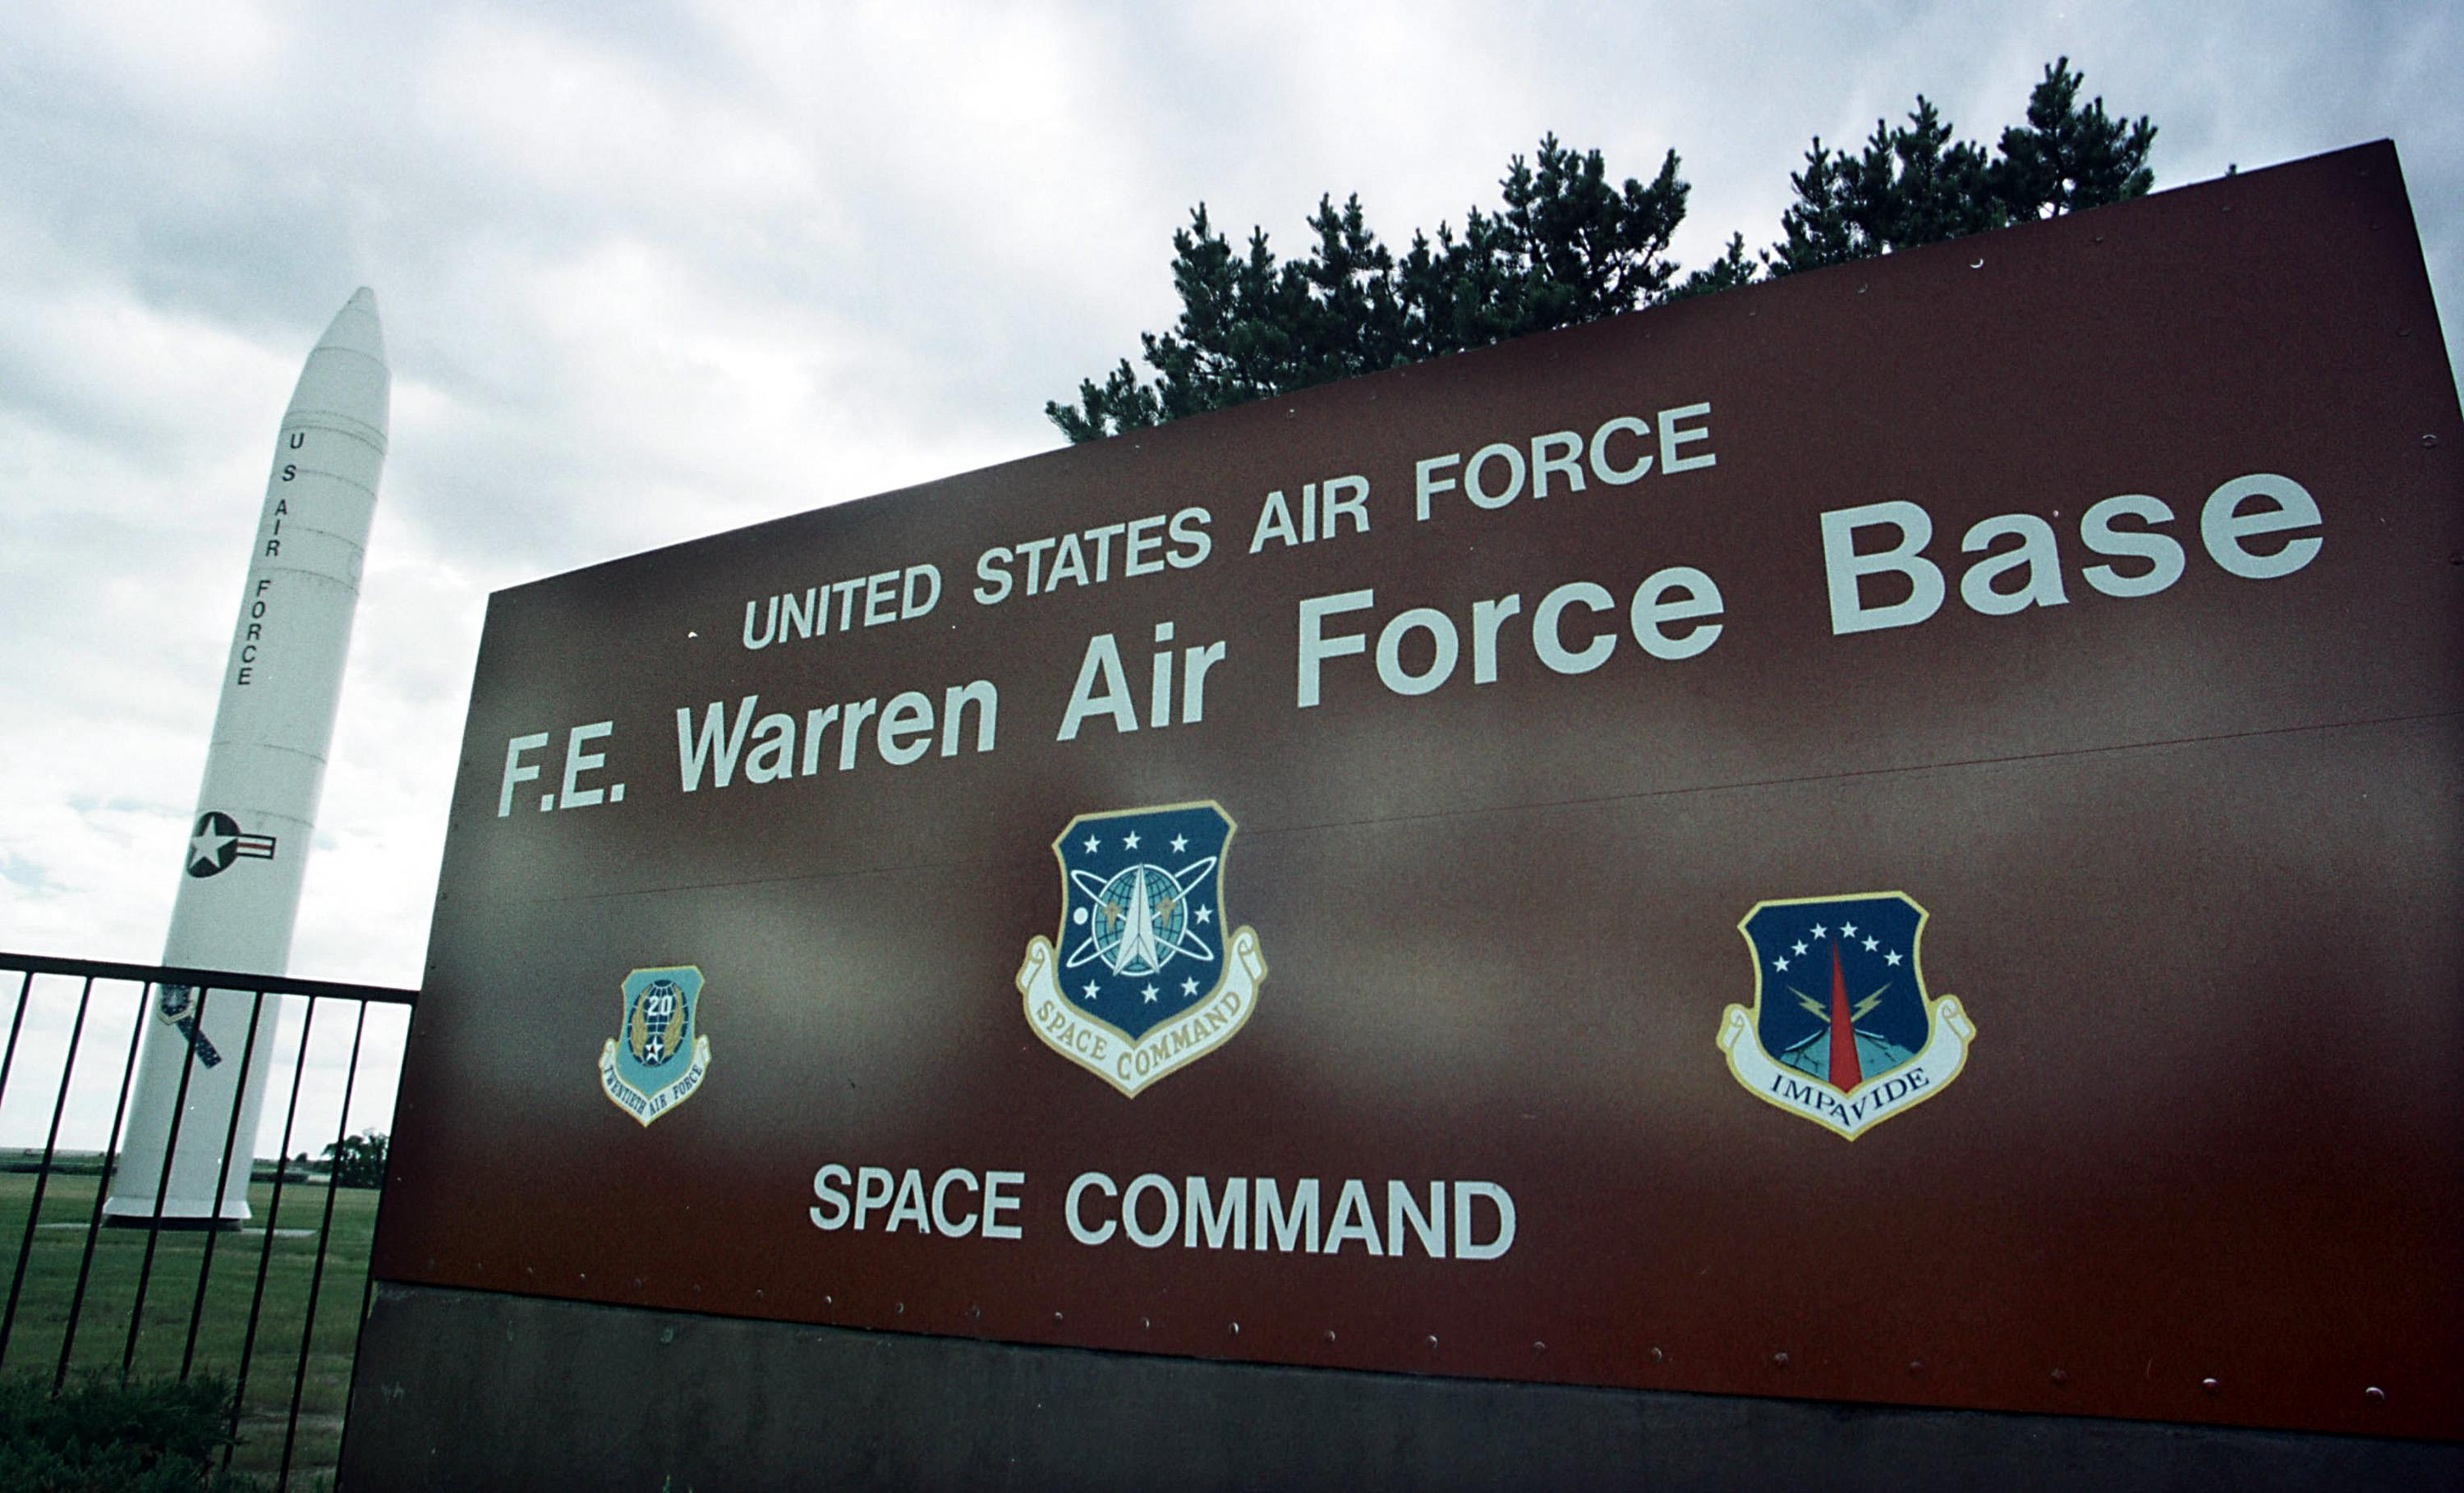 Warren Air Force Base Missiles